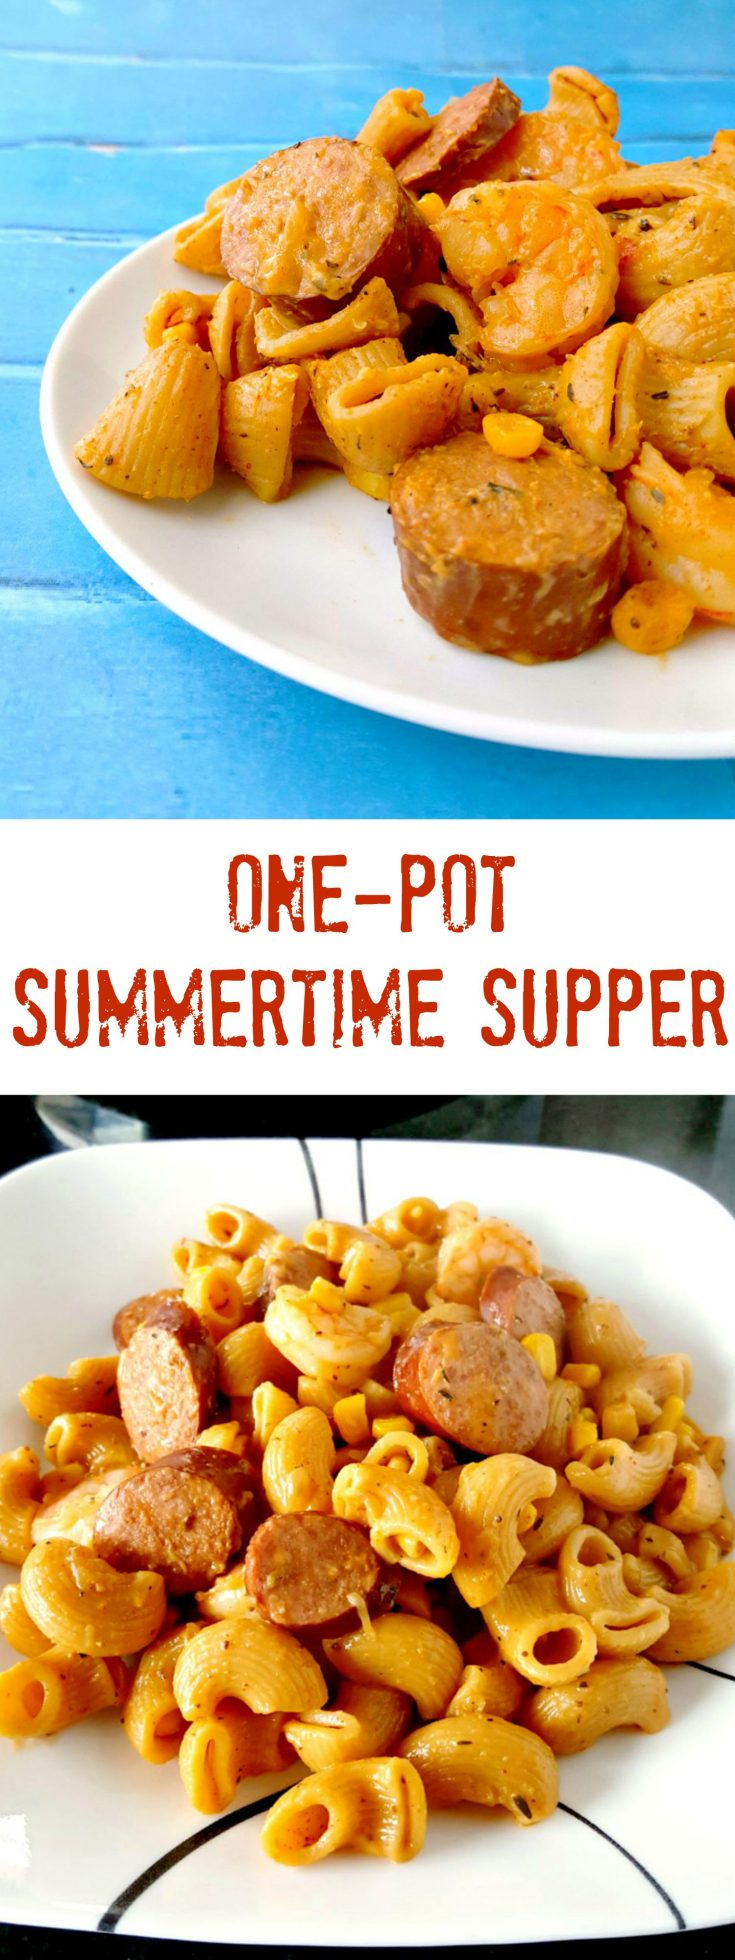 One-Pot Summertime Supper reminds me of summers on the beach cooking up a Lowcountry Boil. Shrimp, sausage, and corn are simmered with pasta in this delicious, one pot meal.